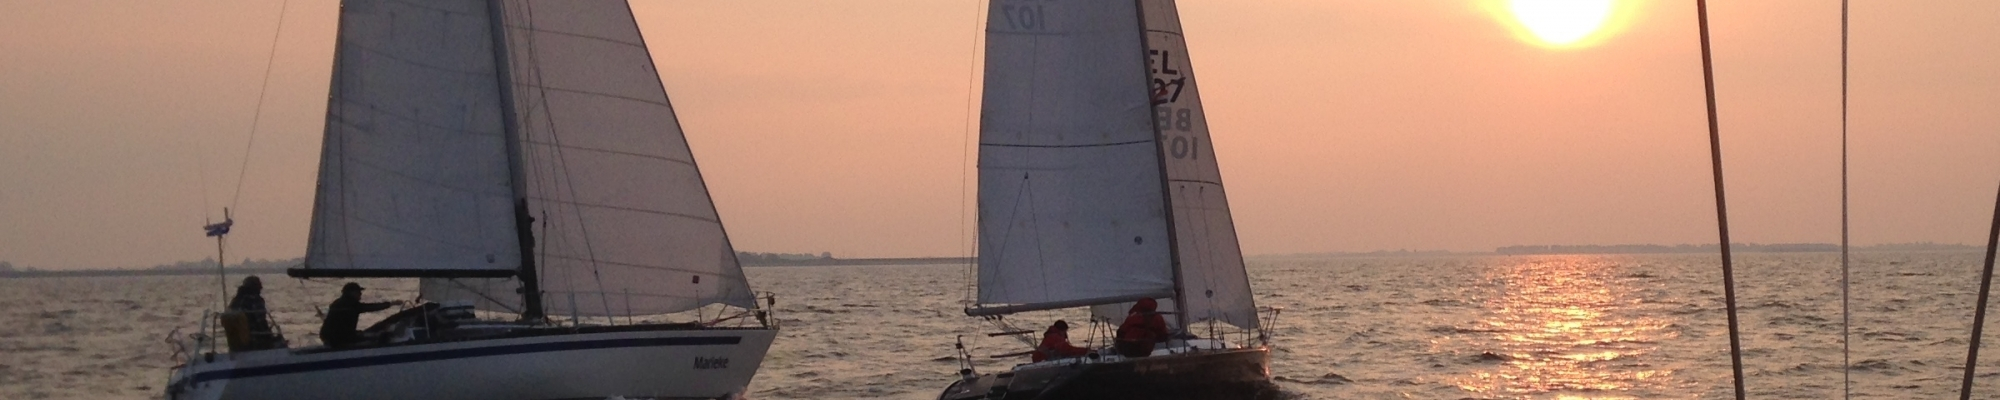 Twilightrace zeilen met SailForce